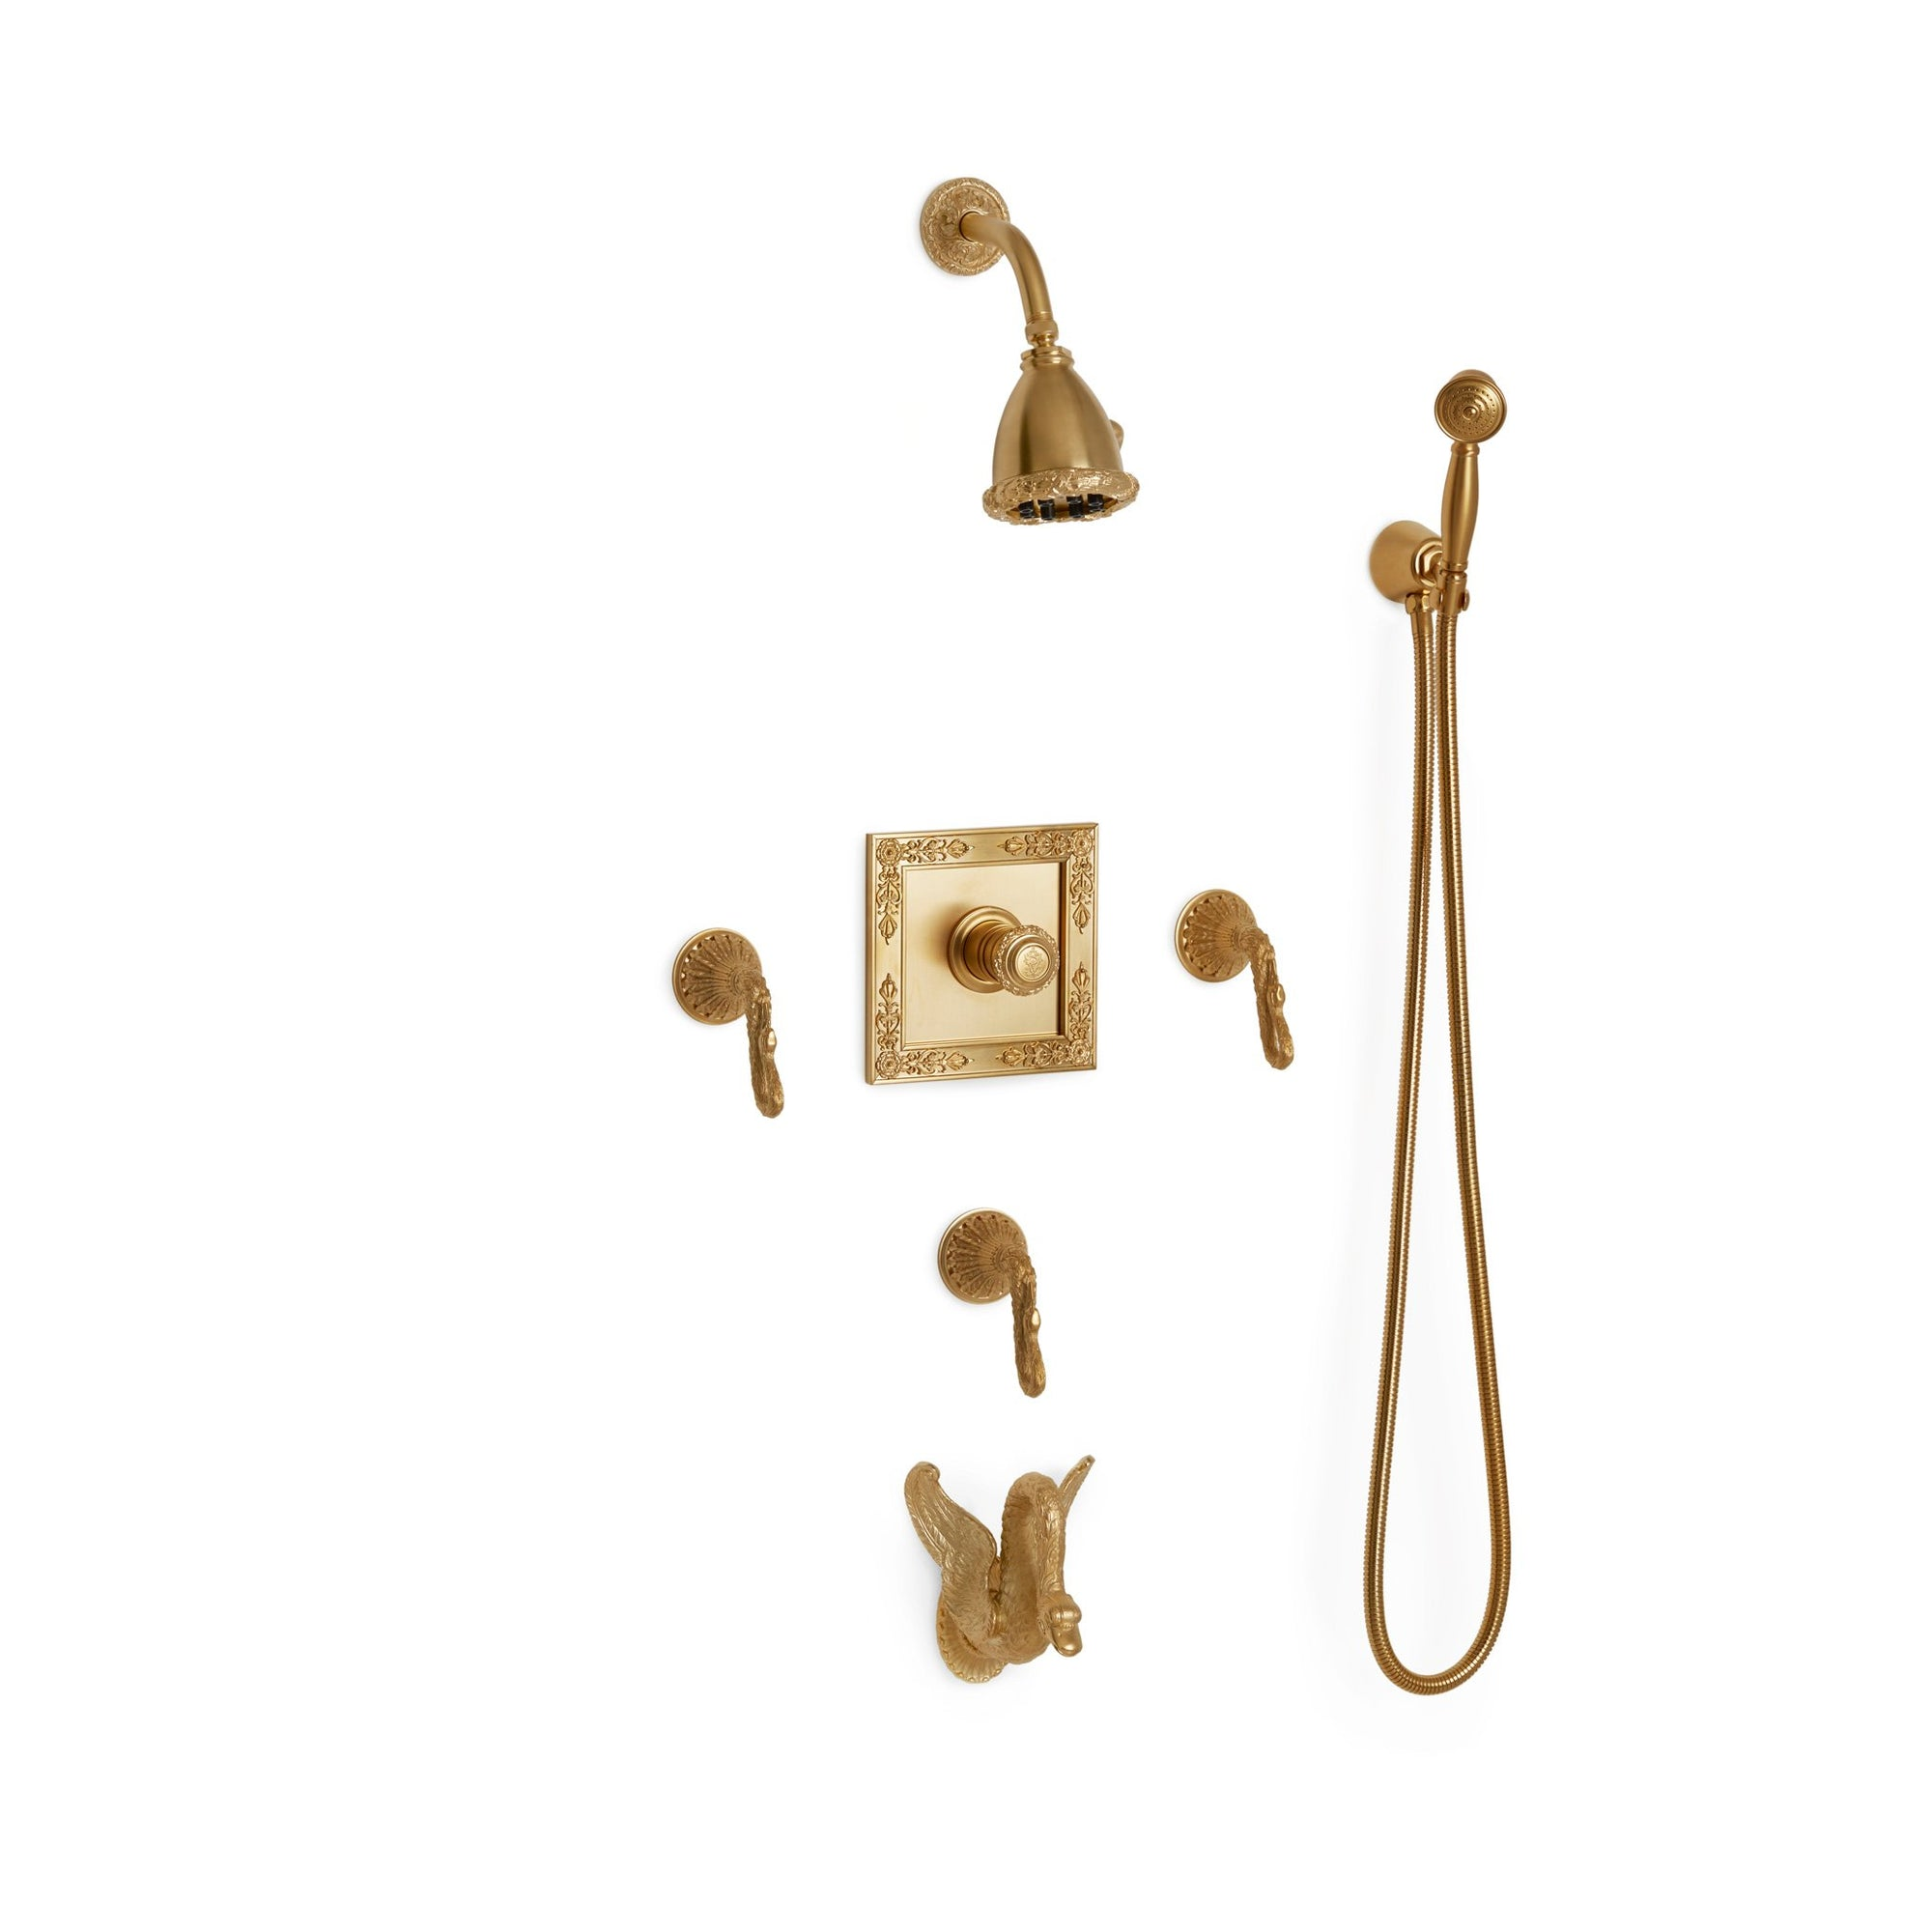 Sherle Wagner International Swan High Flow Thermostatic Shower and Tub System in Gold Plate metal finish